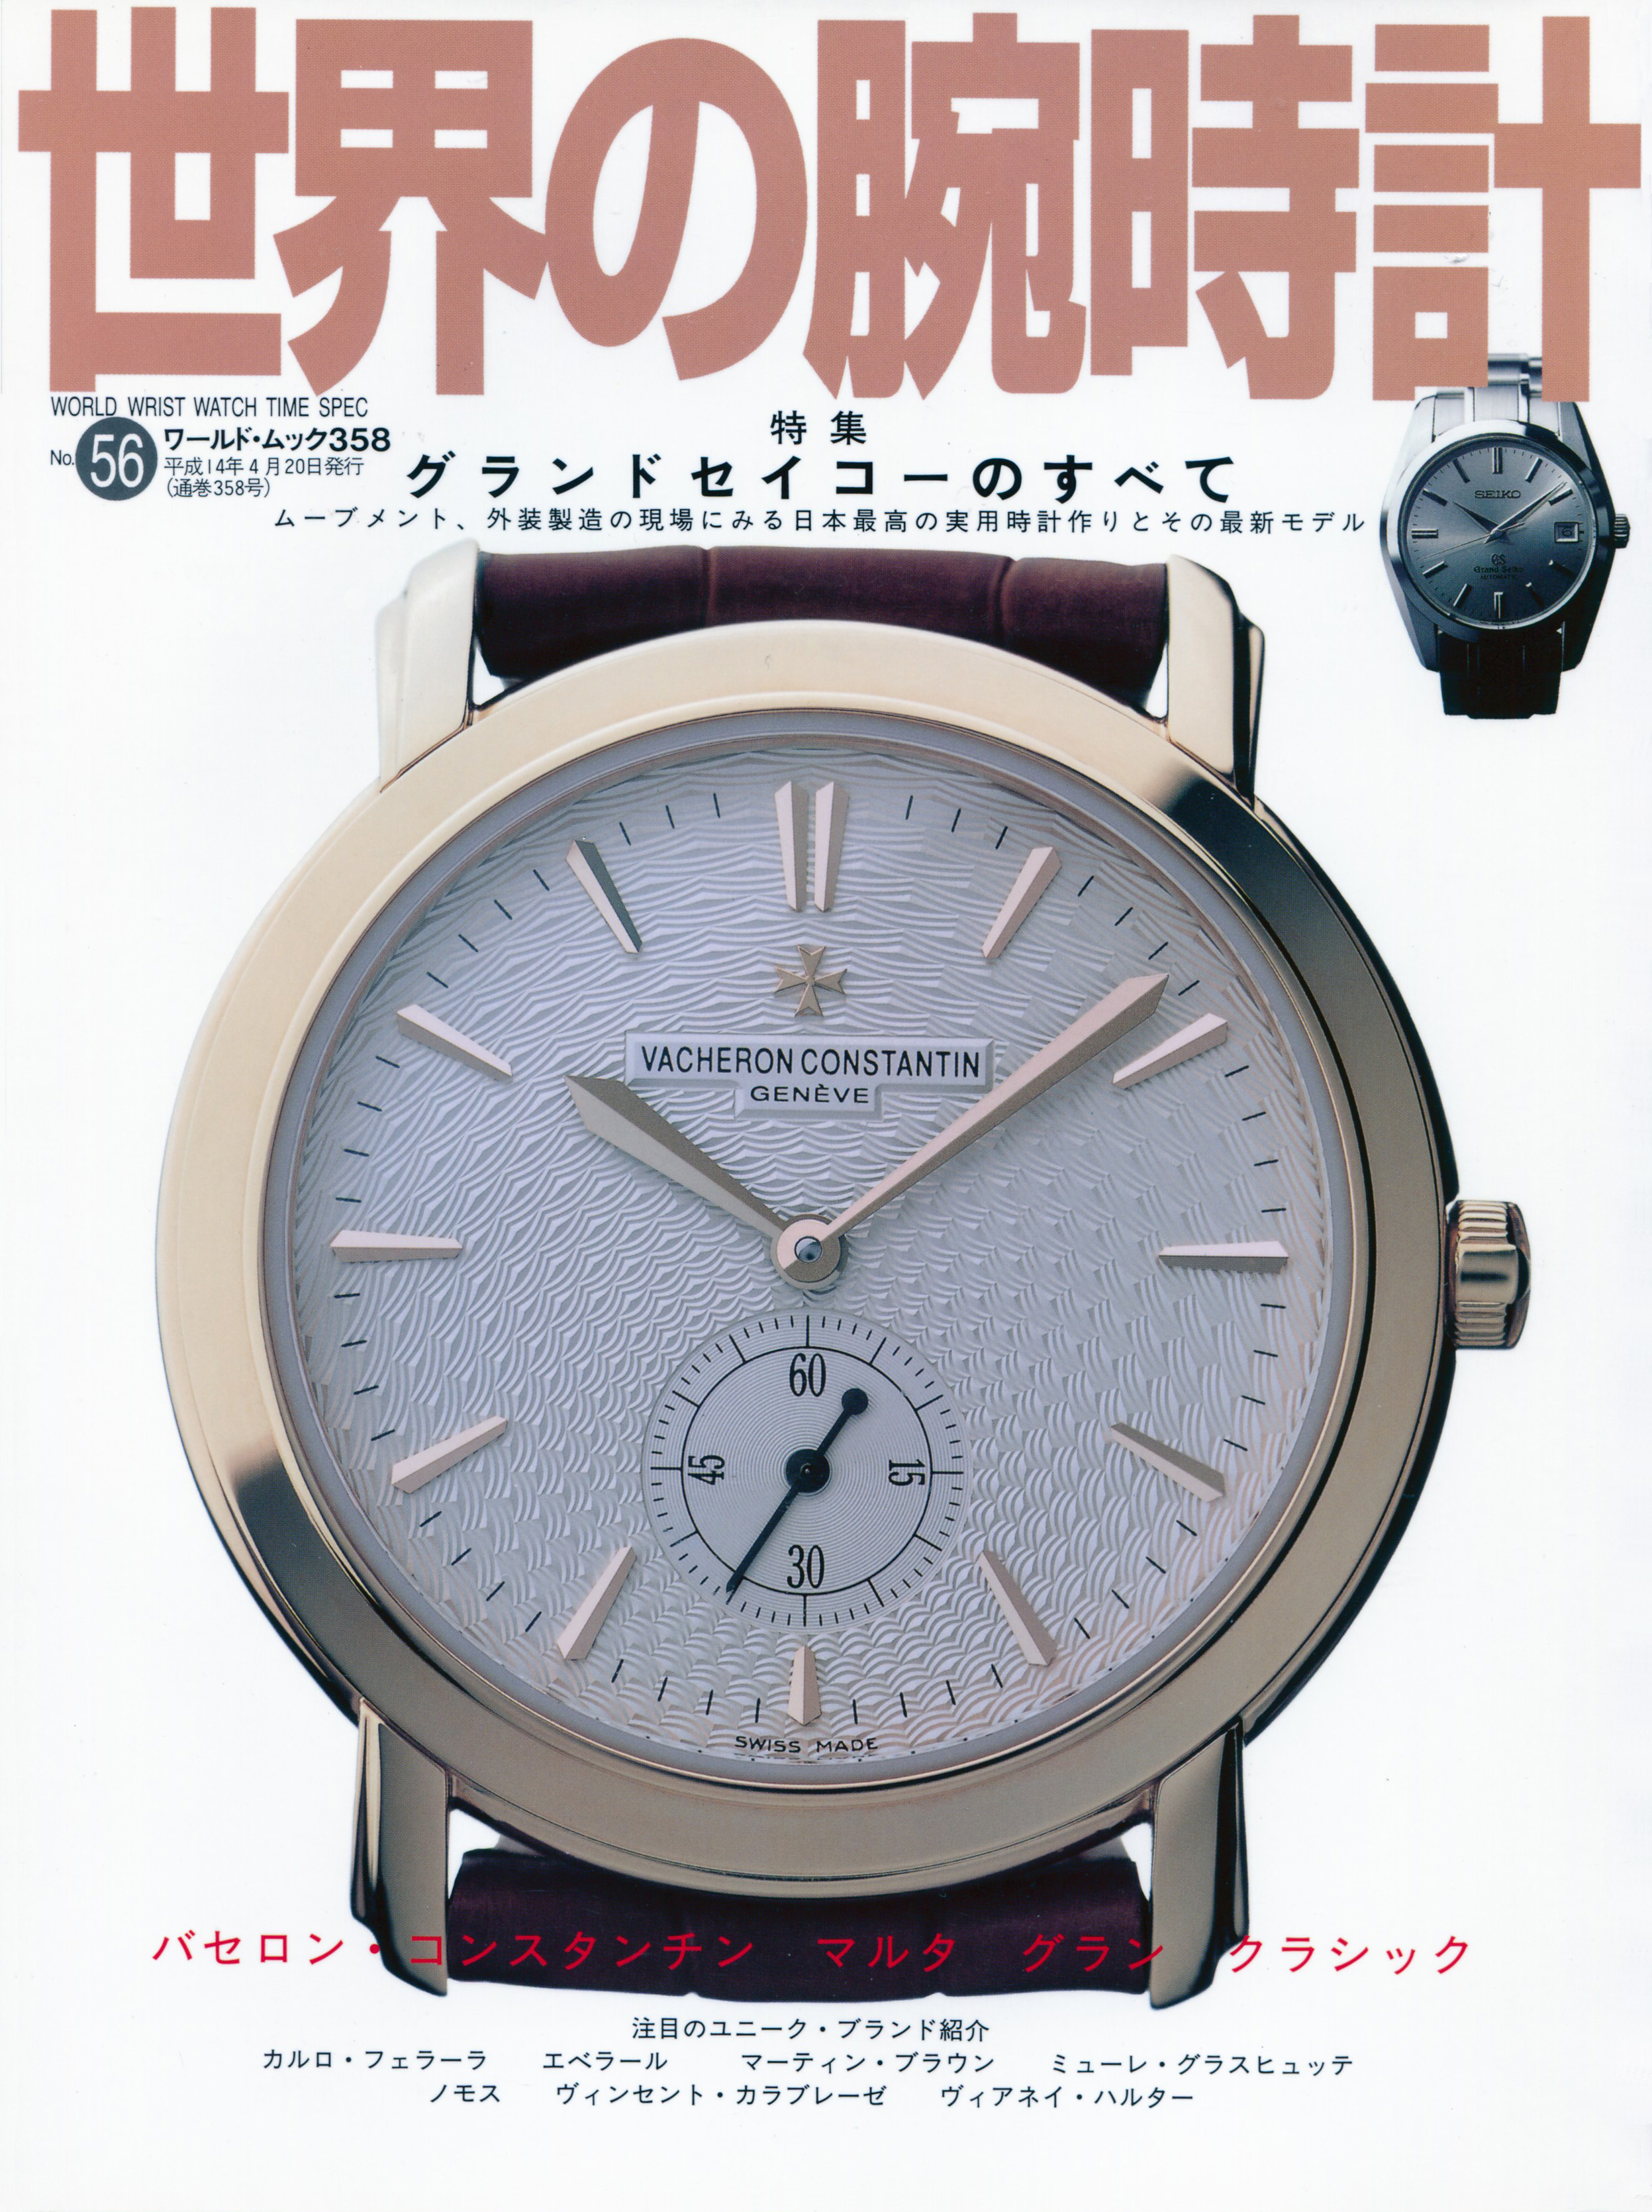 Cover -World Wrist Watch Time Spec No. 56